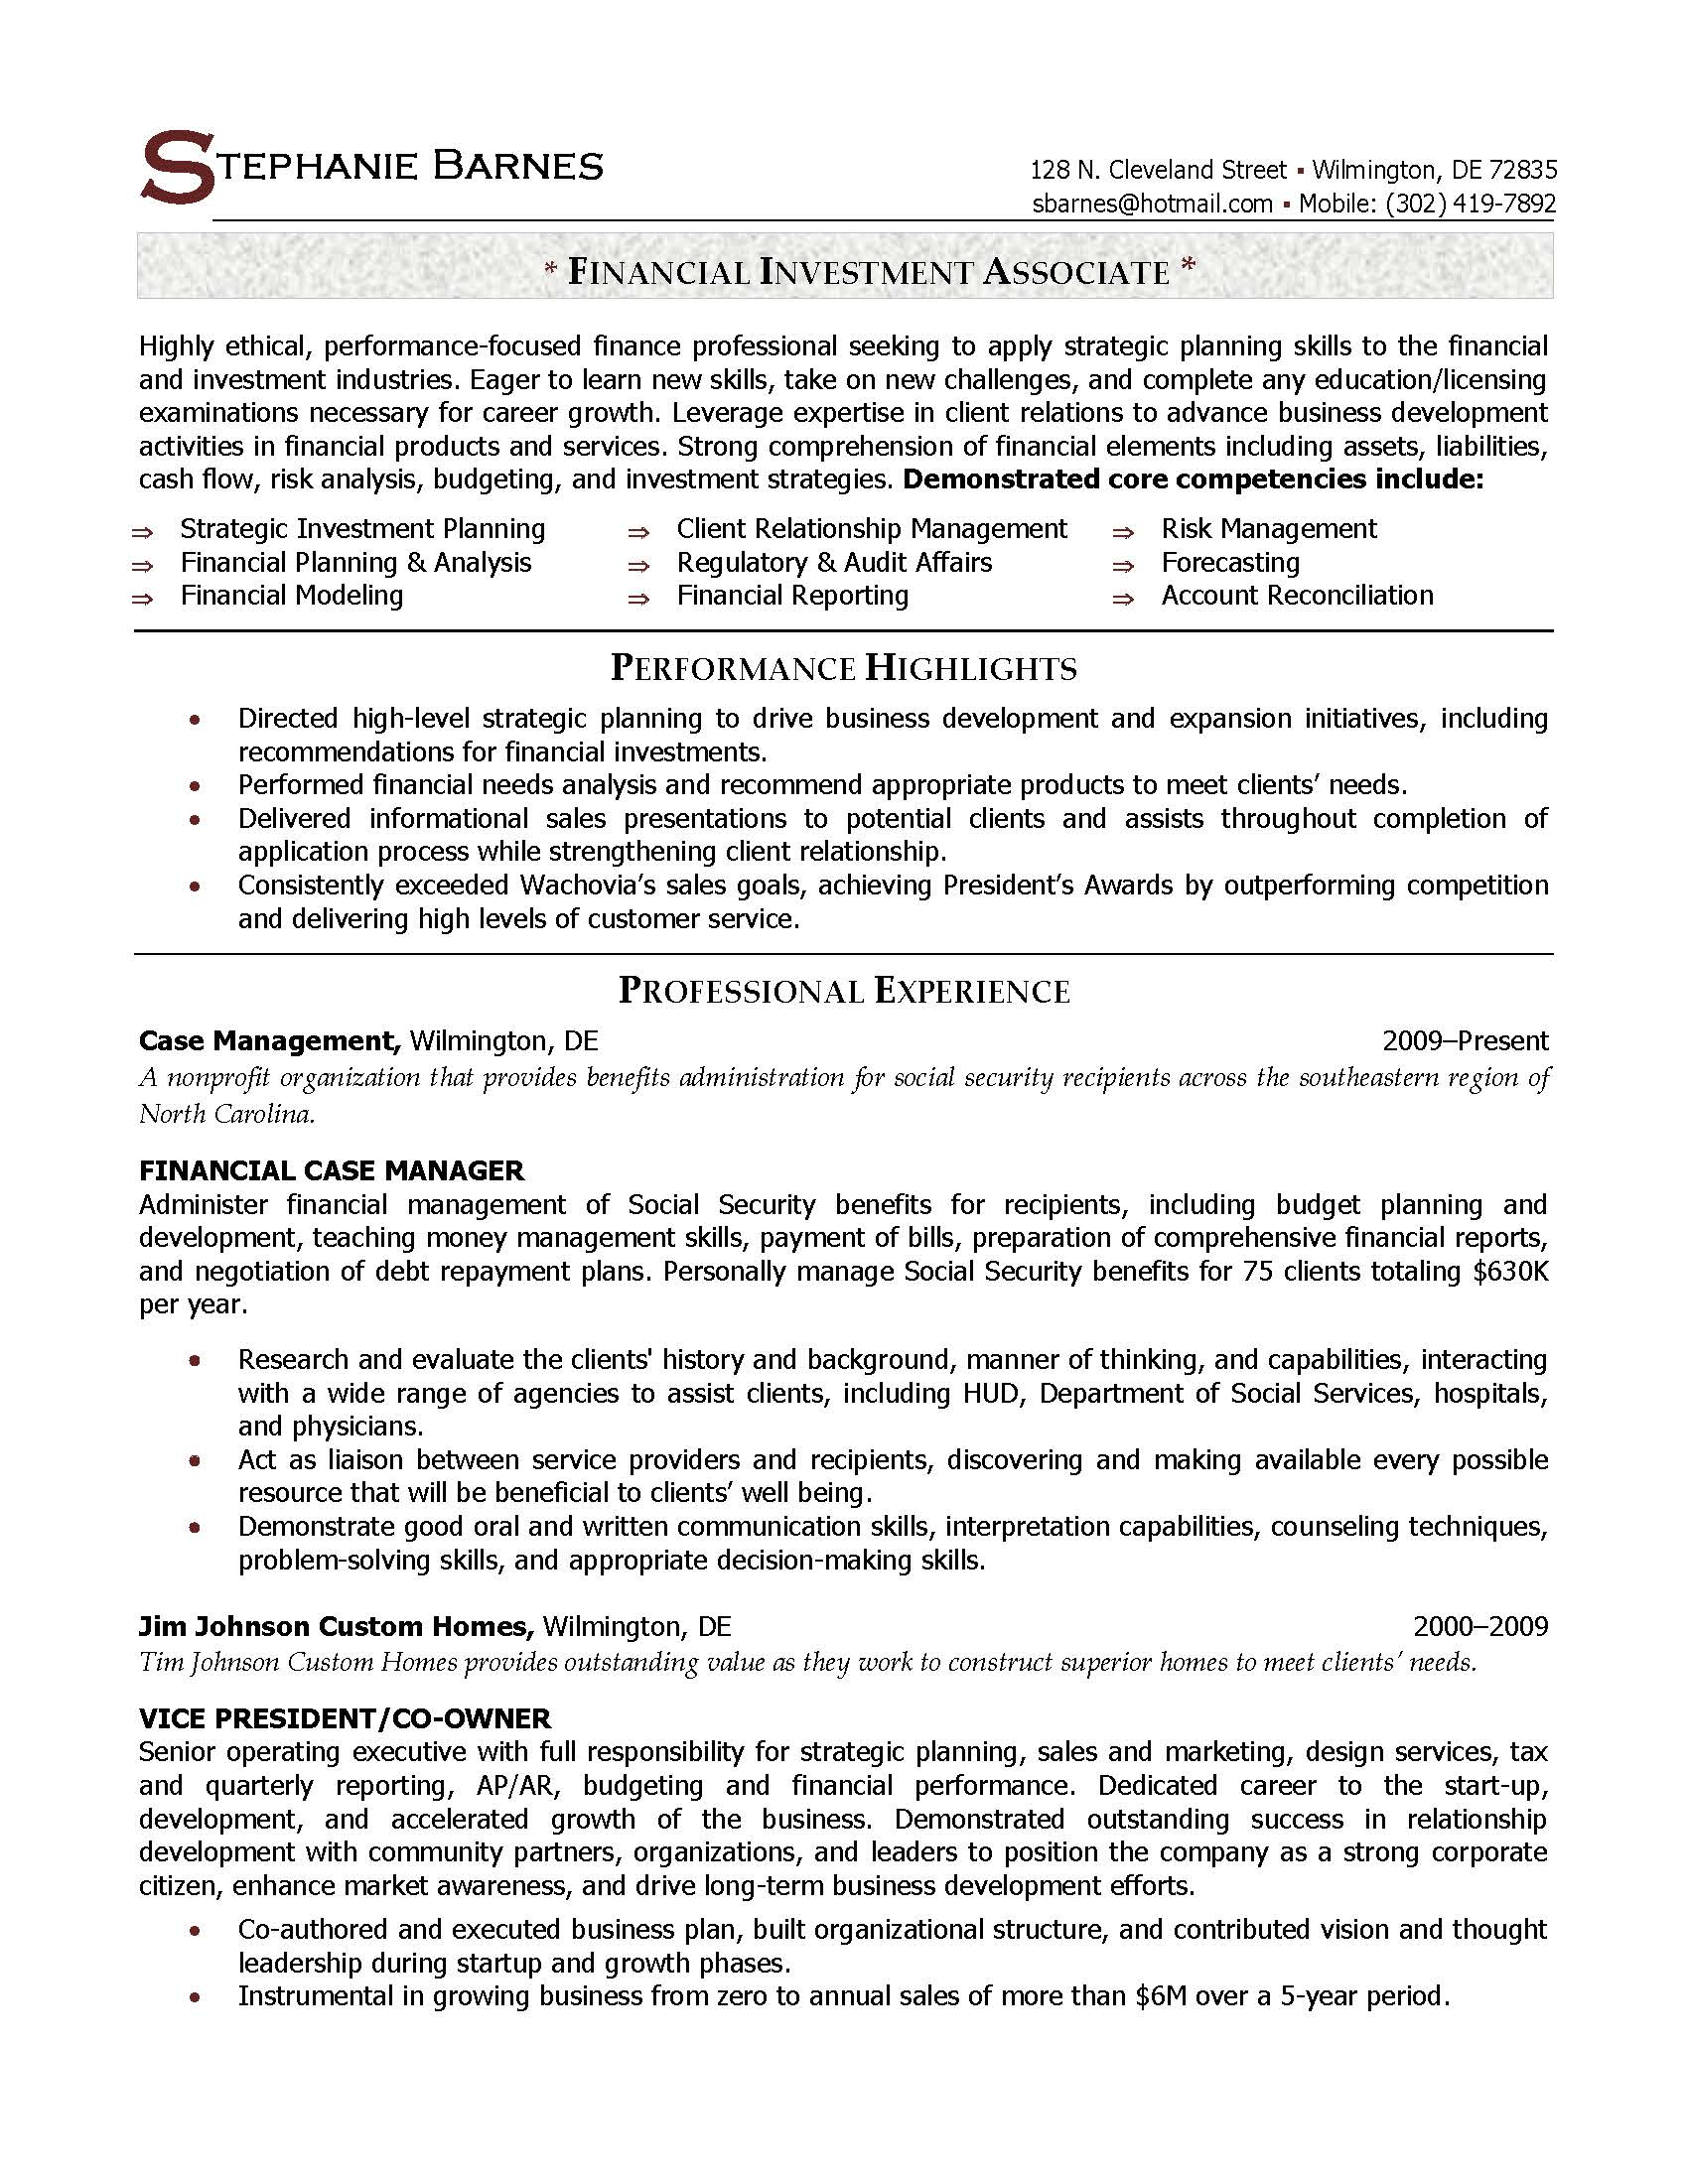 Resume writing service financial services